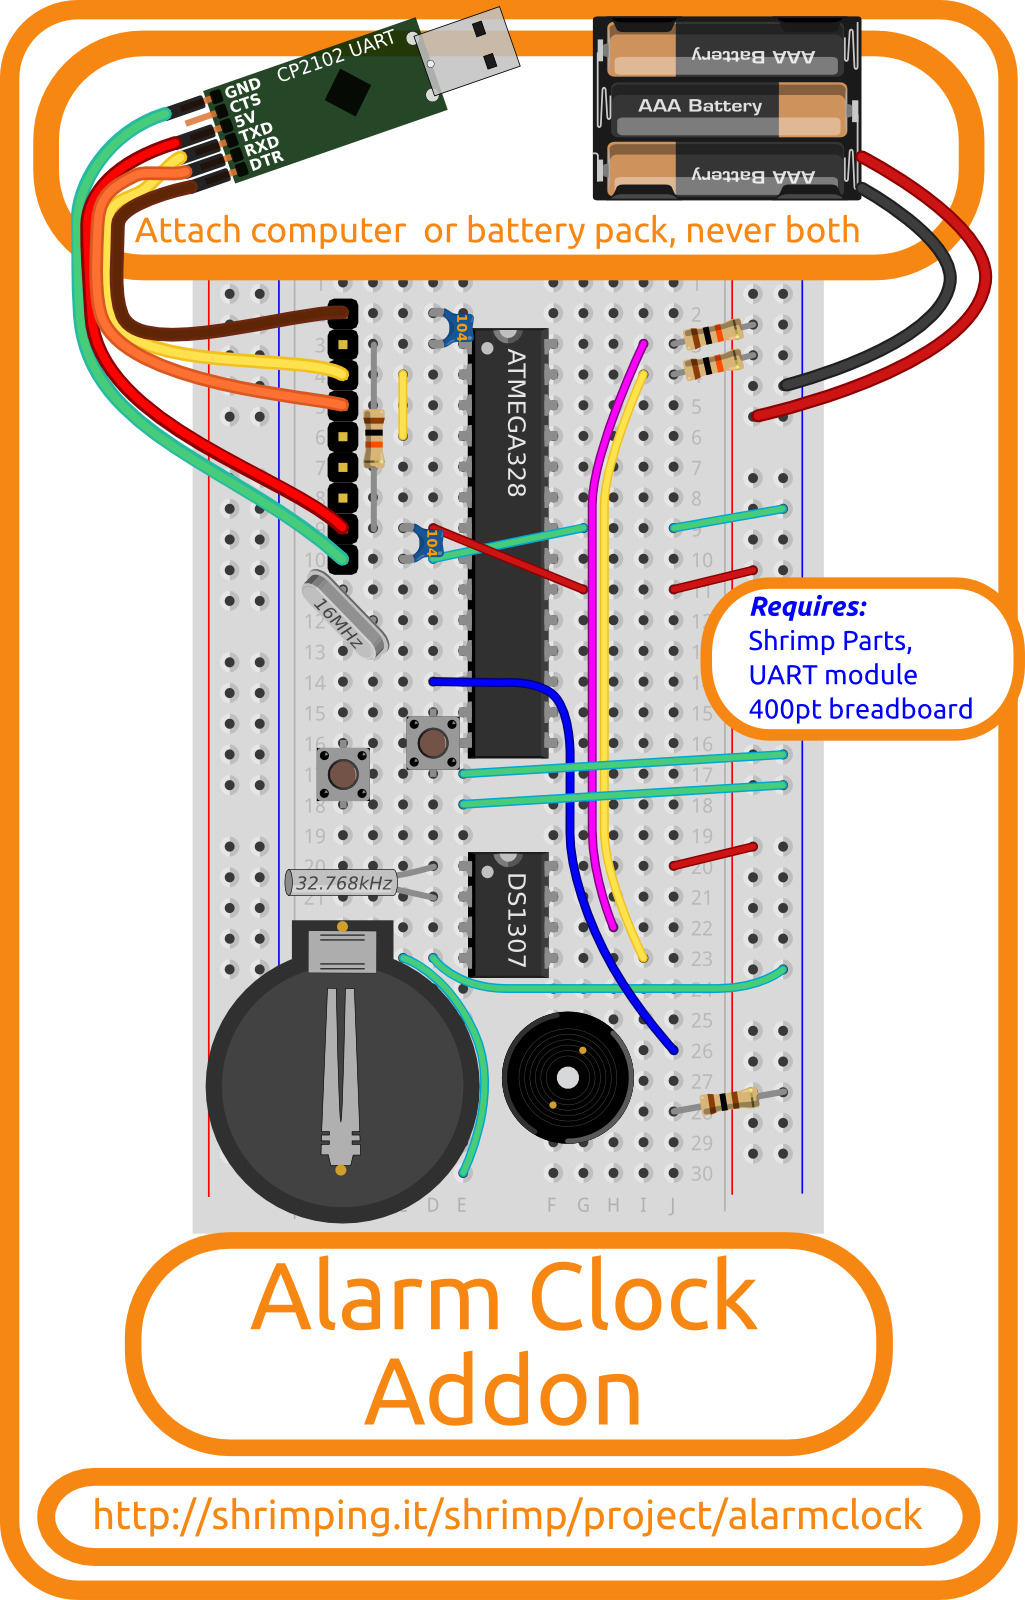 Build diagram for Alarm Clock